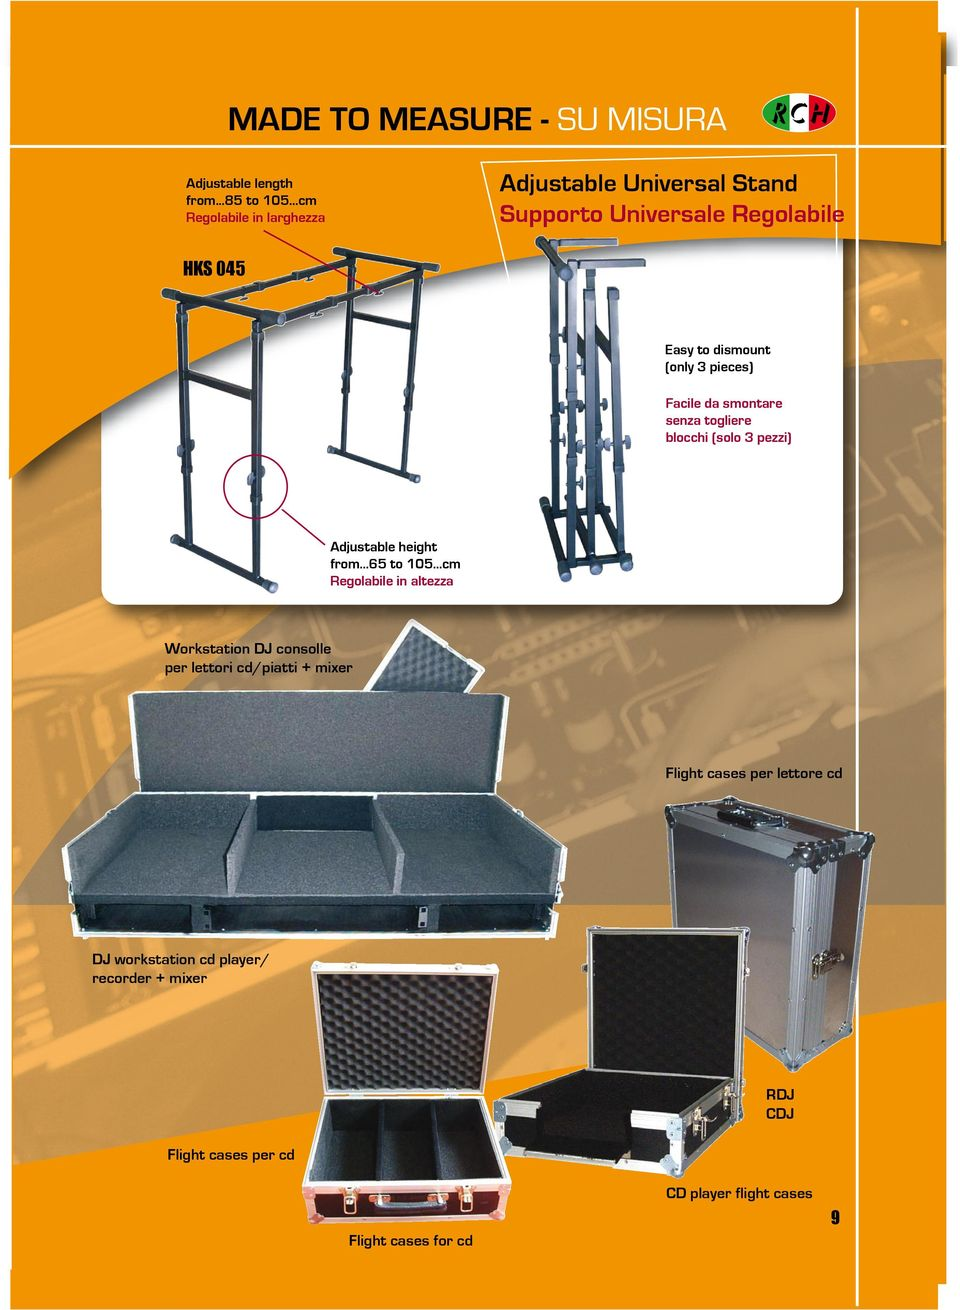 3 pieces) Facile da smontare senza togliere blocchi (solo 3 pezzi) Rack + Mixer Pro Adjustable height from...65 to 105.